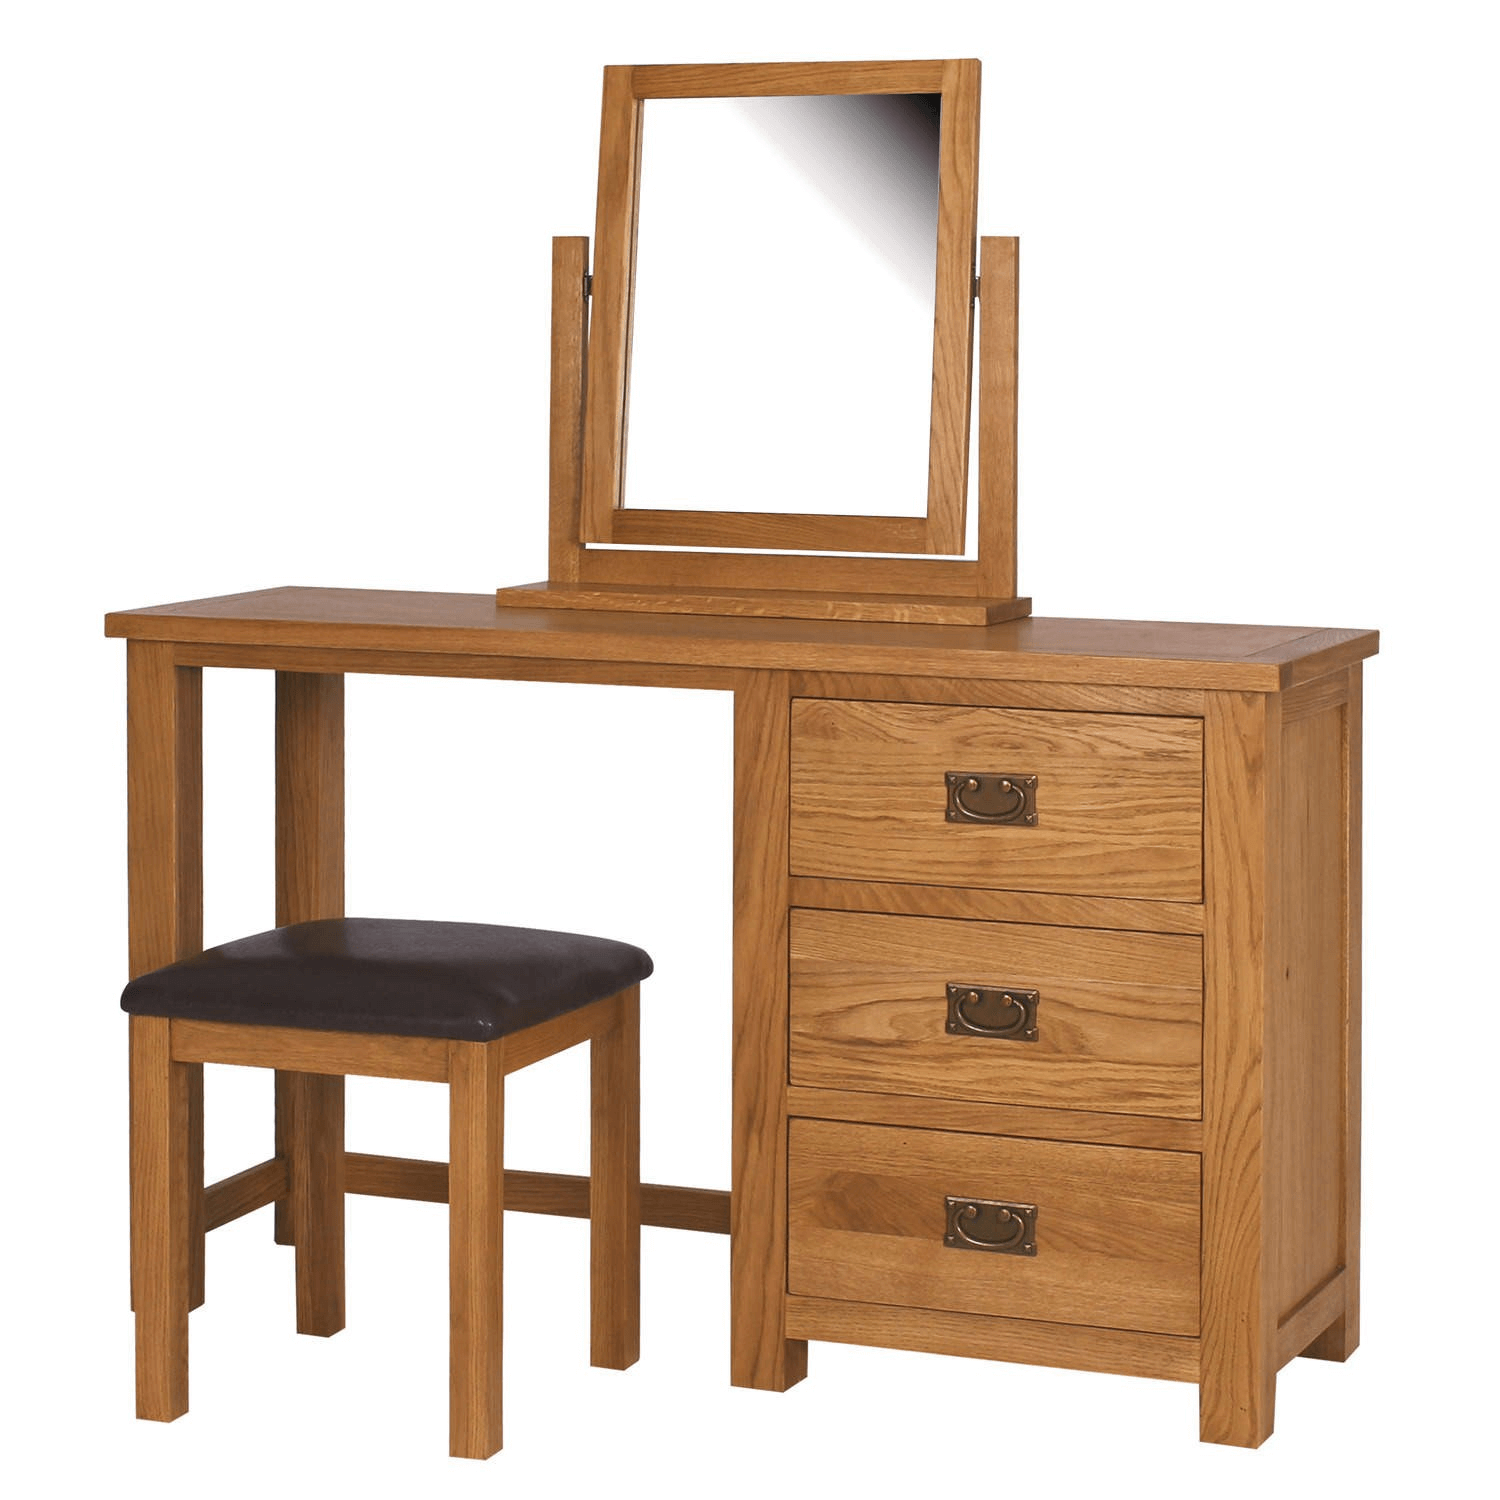 Oak unfinished wood dressing table with mirror and chairs